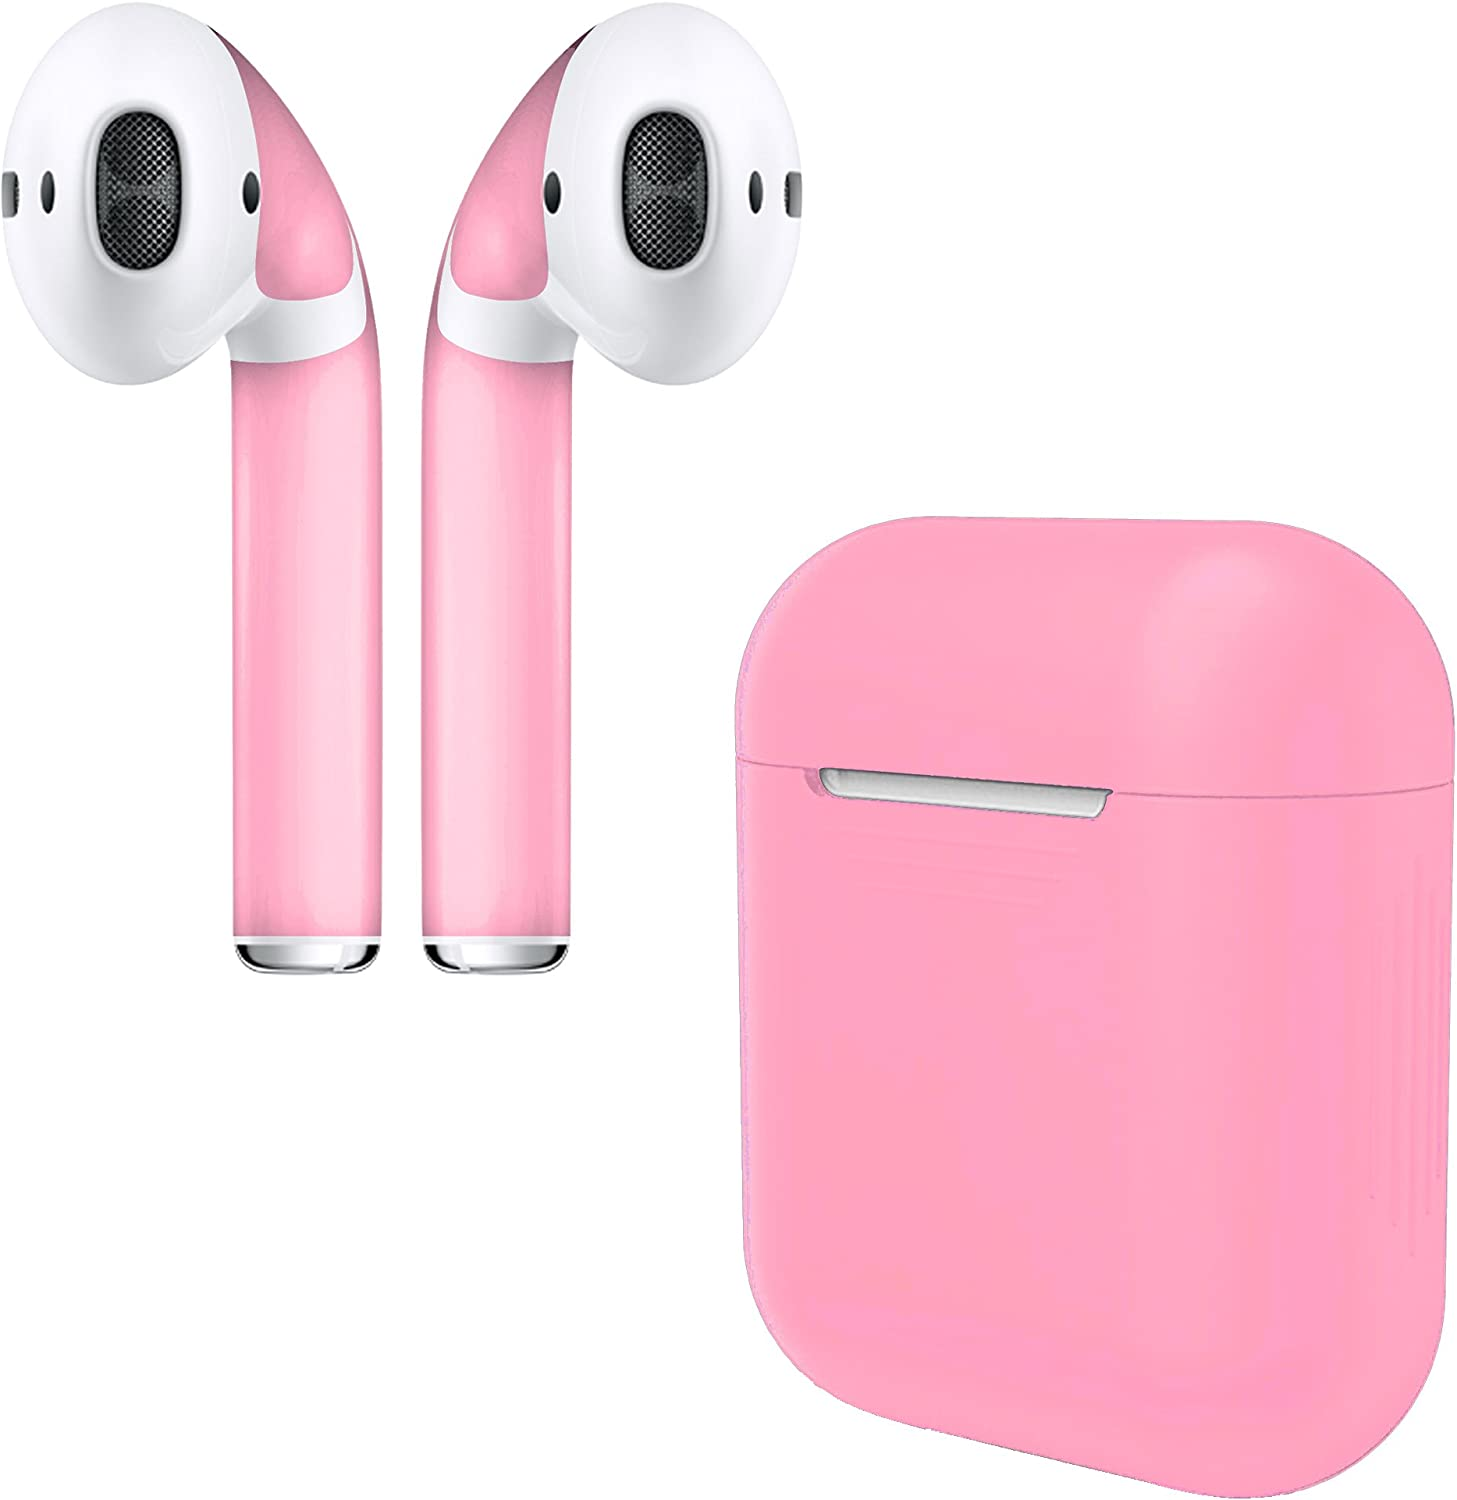 APSkins Silicone Case and Stylish Skins Compatible with Apple AirPod Accessories (Bubble Gum Pink Case & Skin)